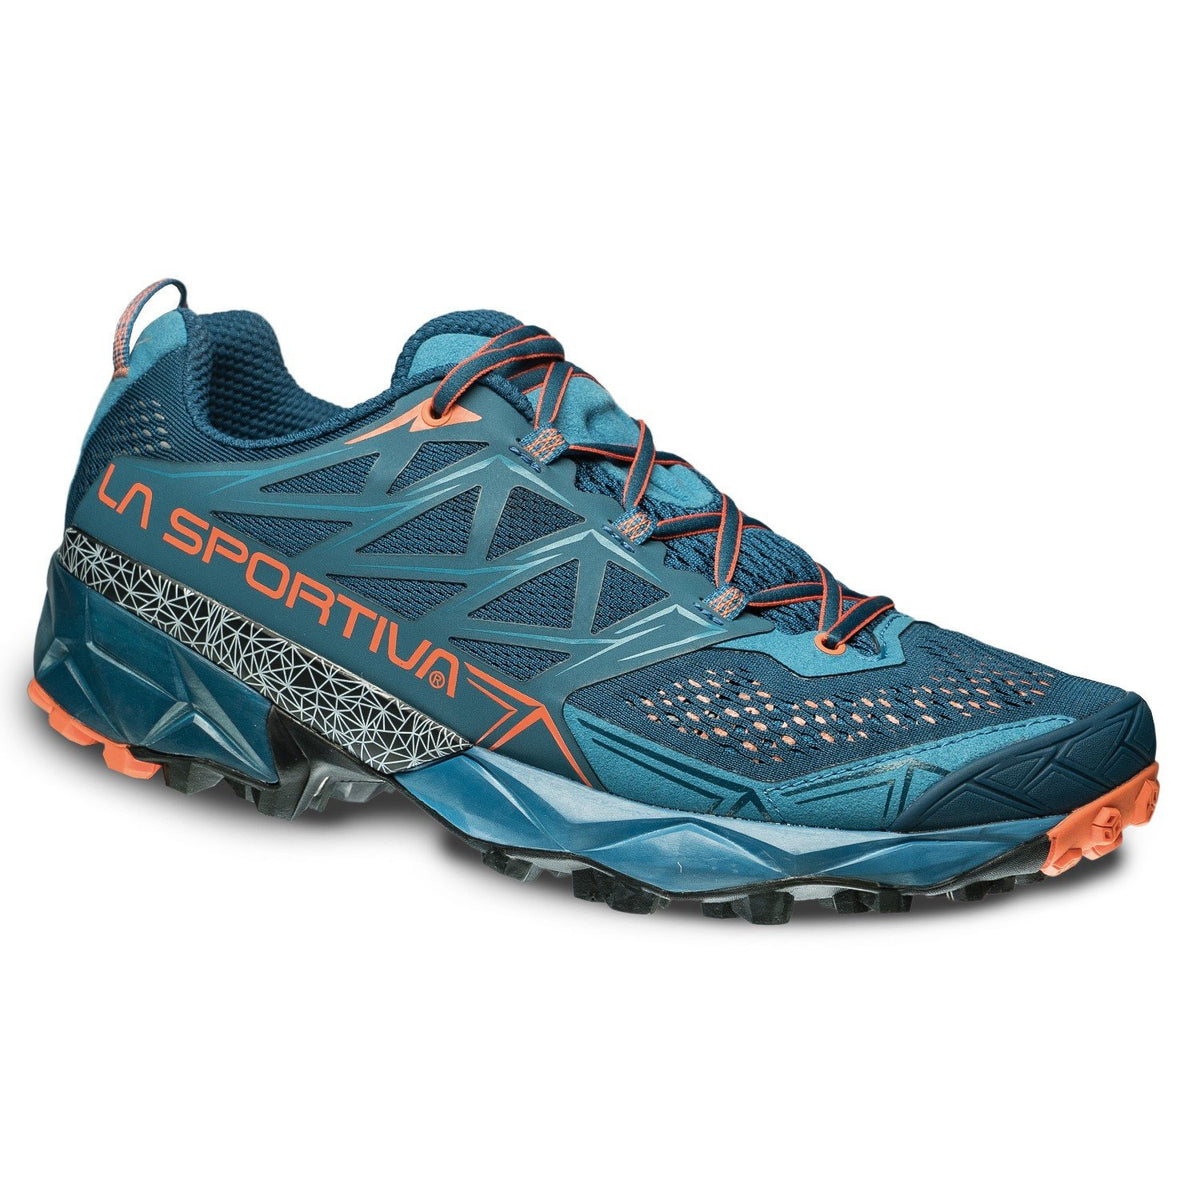 La Sportiva Akyra running shoe, outer side view in blue/orange colours